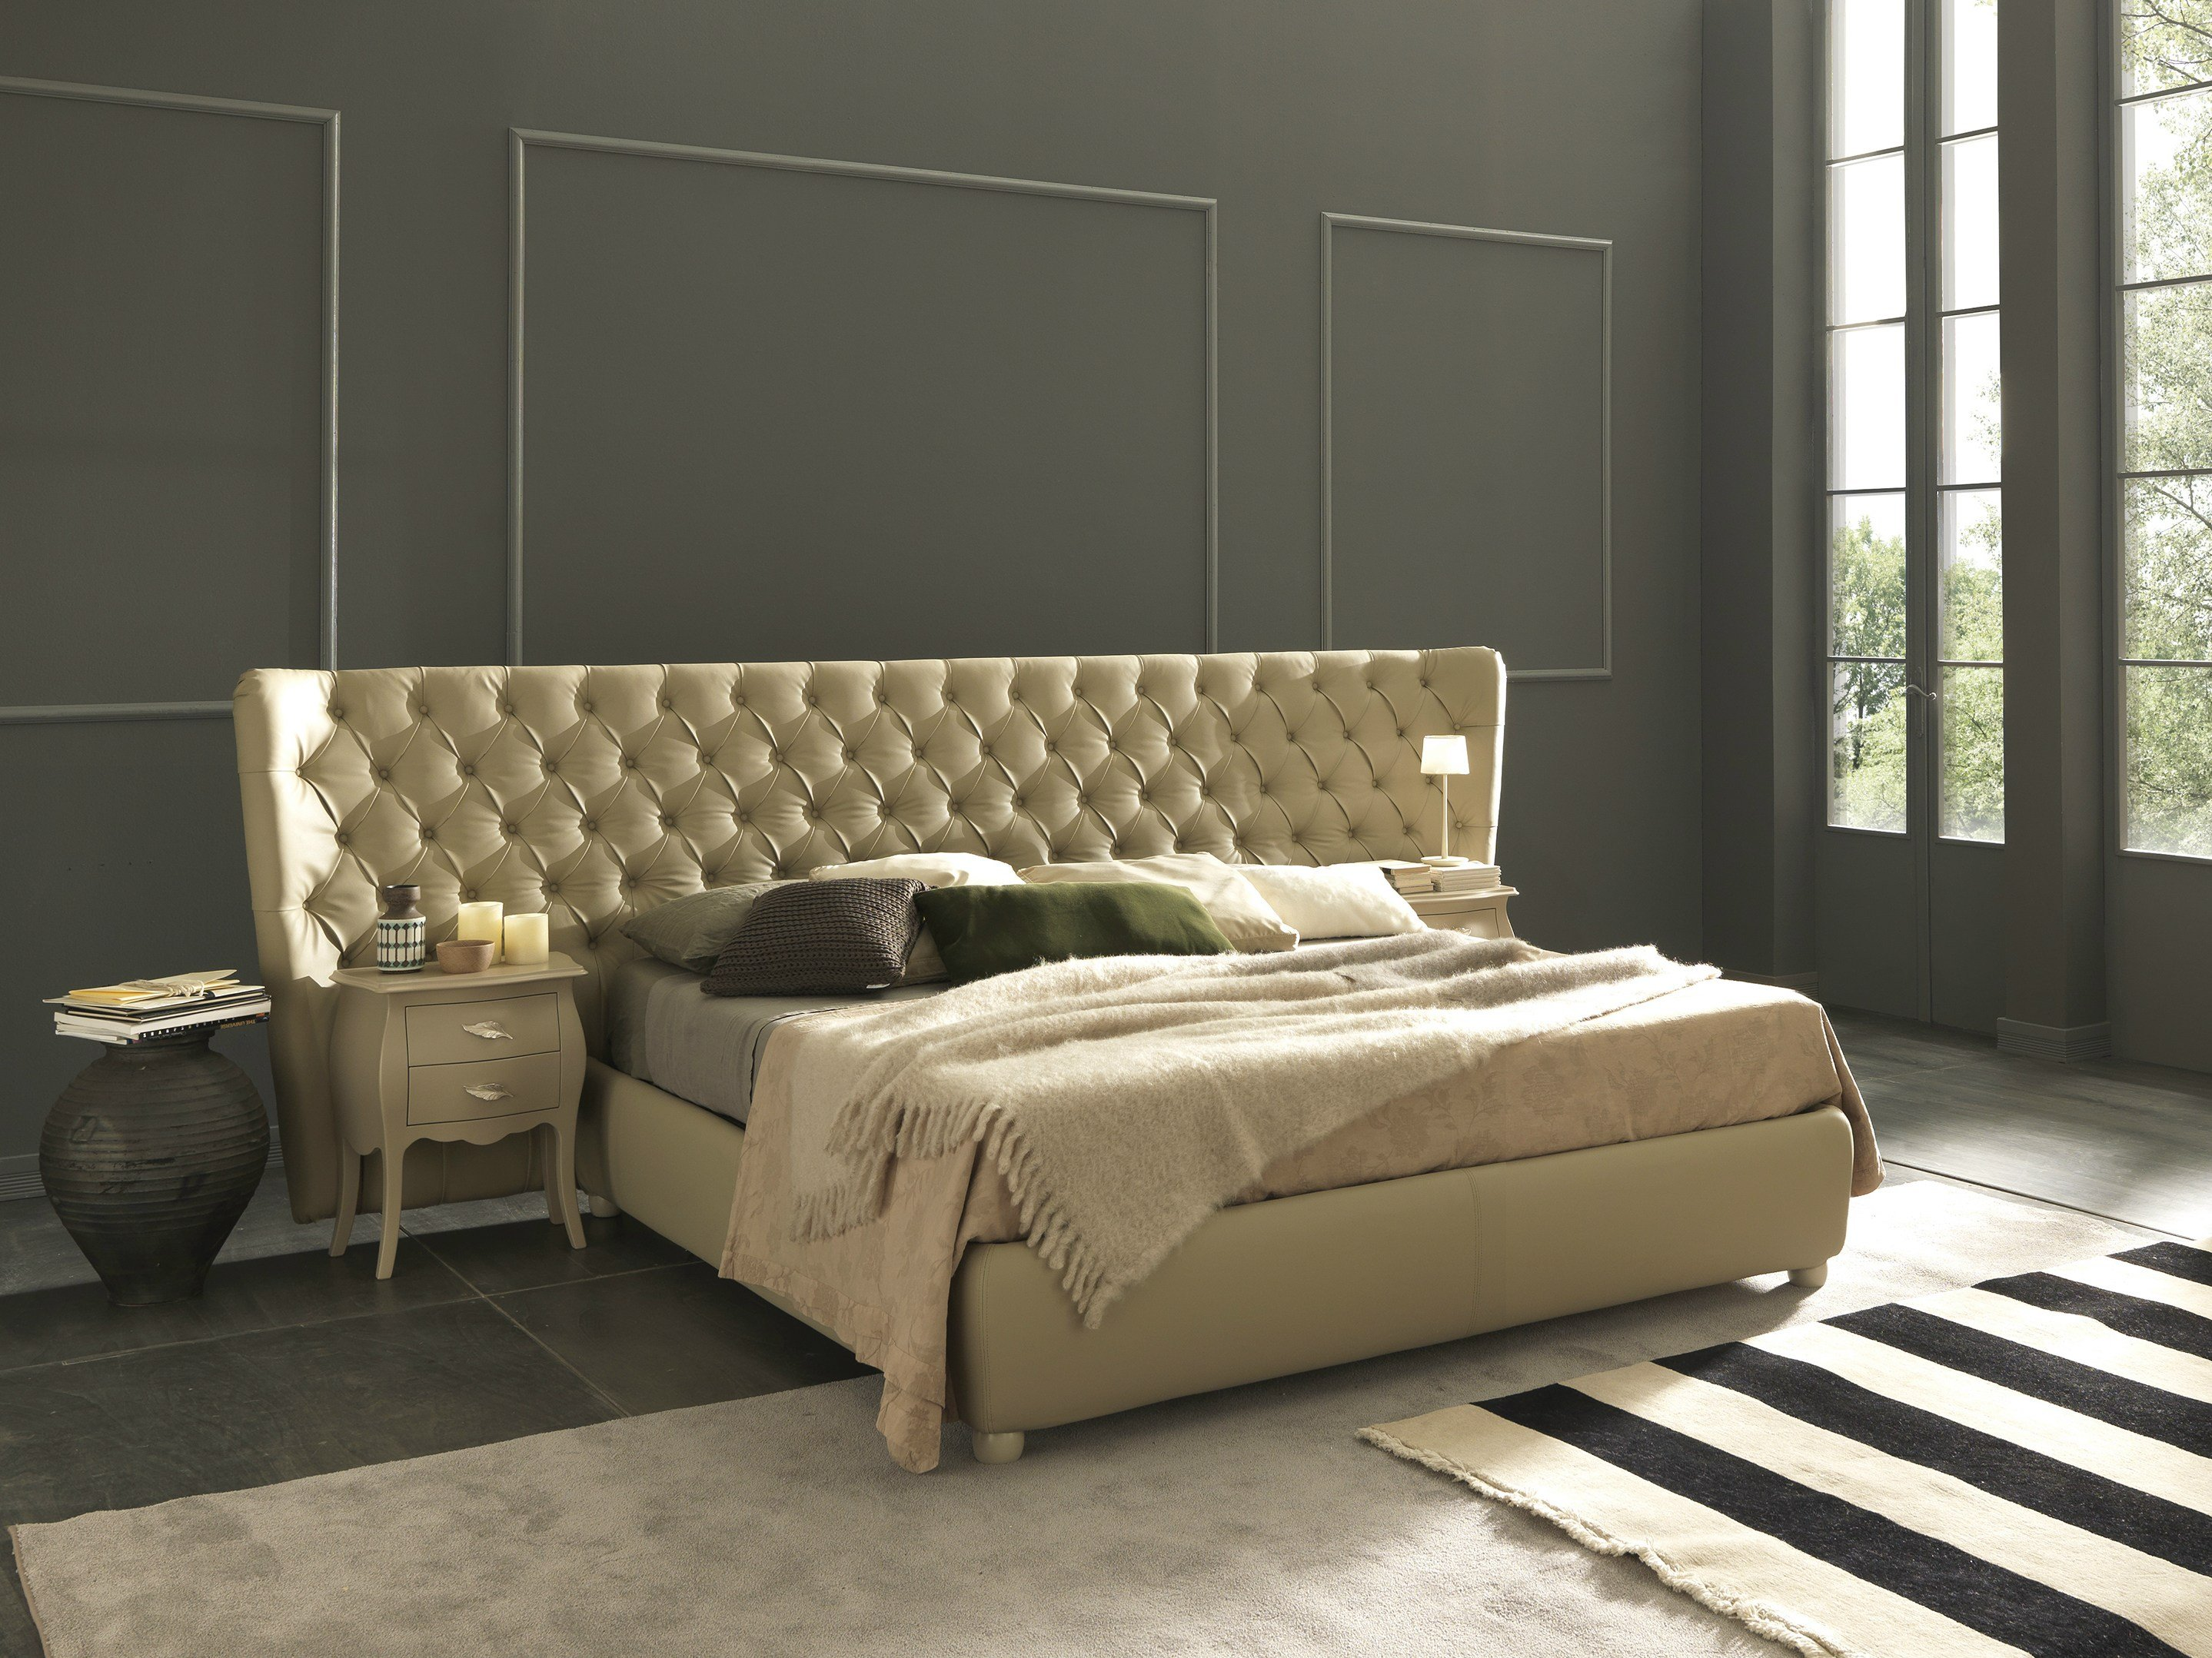 Double bed with tufted headboard selene extra large by for Table de lit